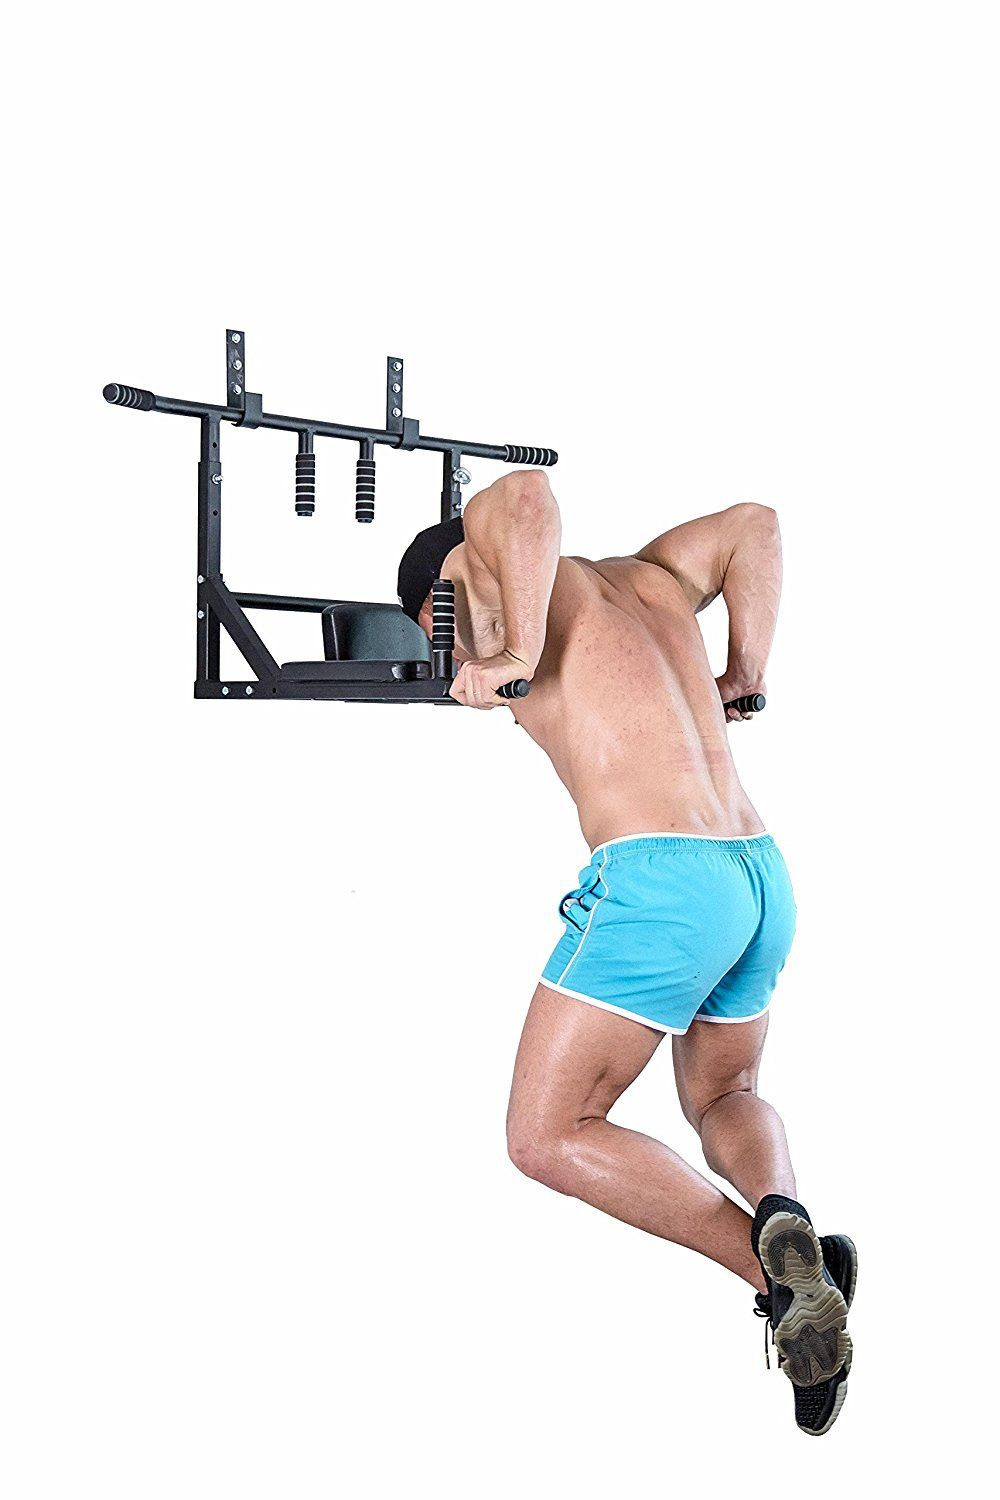 Best Portable Wall Mounted Pull Up Bar - Chin Up Bar With ...